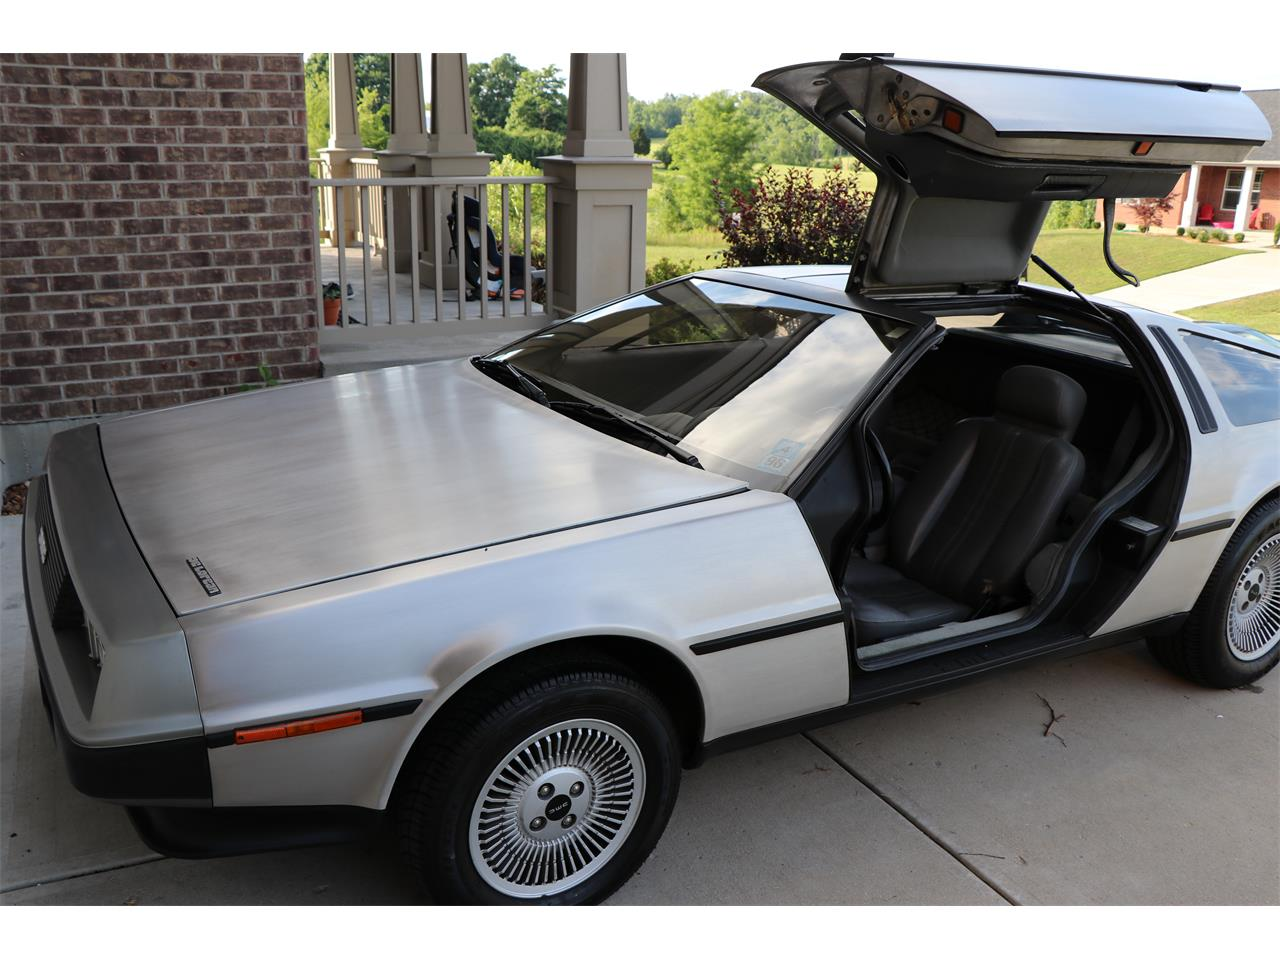 Large Picture of '82 DMC-12 - $37,000.00 Offered by a Private Seller - NOW5